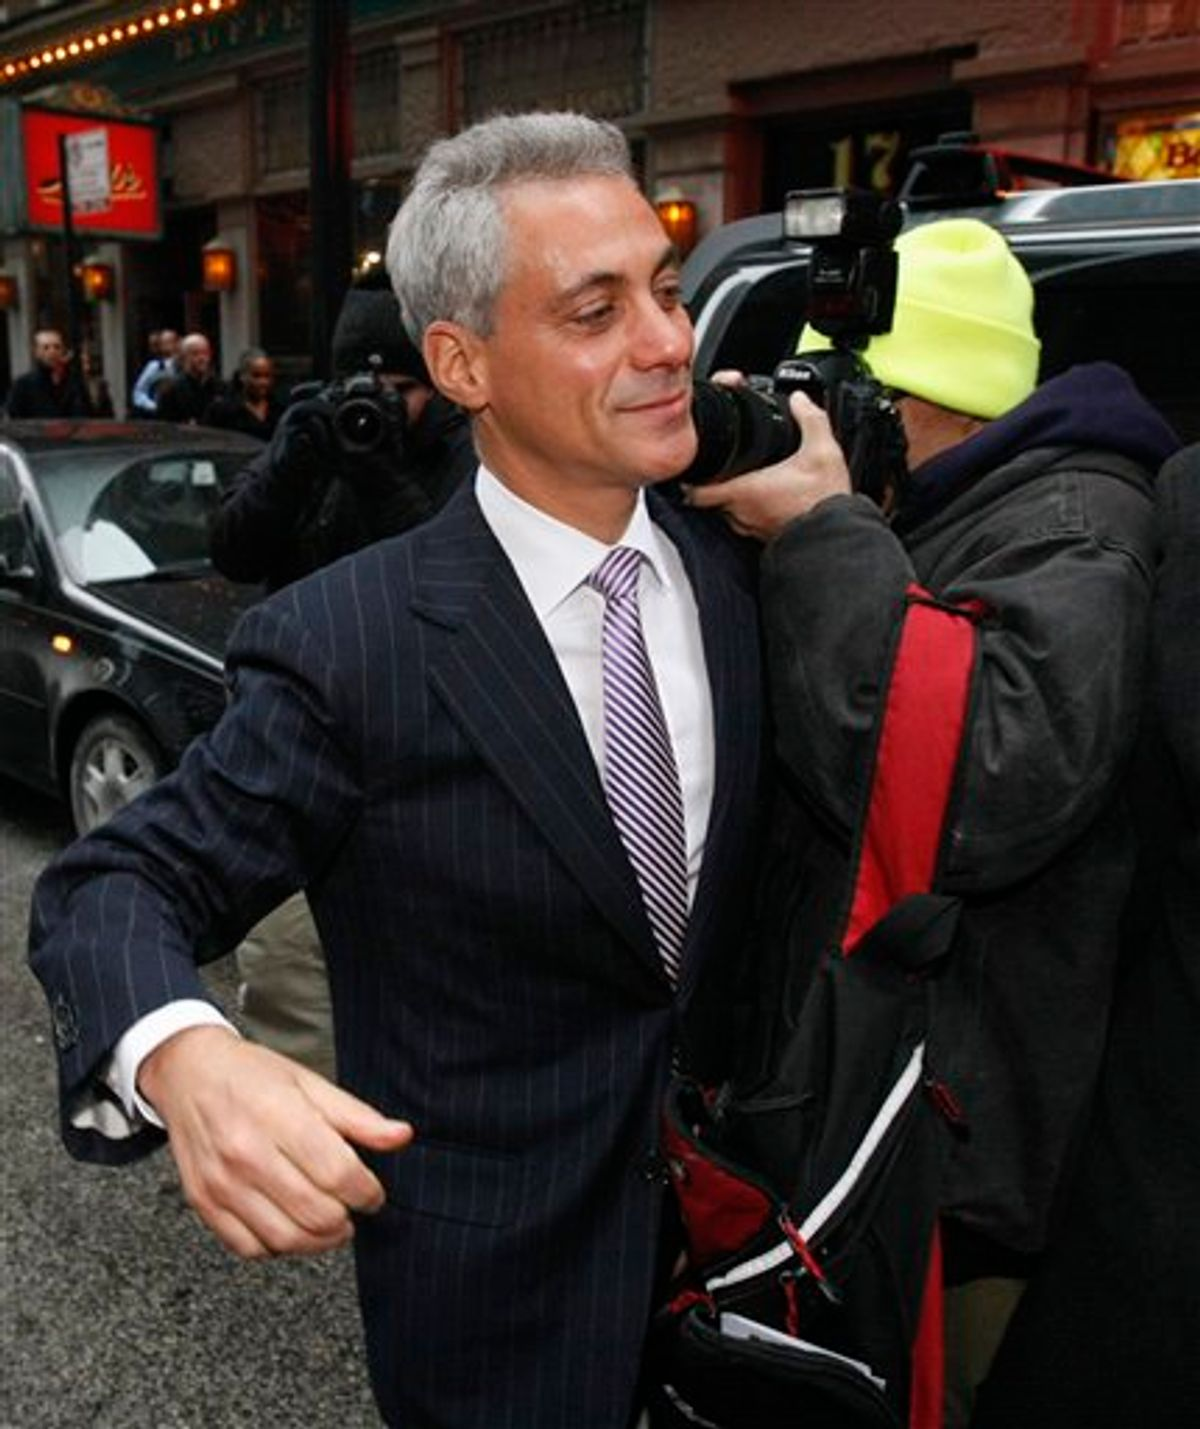 Former White House Chief of Staff Rahm Emanuel leaves a news conference in Chicago, Monday, Jan. 24, 2011, where he responded to an Illinois appeals court ruling that threw him off the ballot for Chicago mayor because he didn't live in the city in the year before the election. The court voted 2-1 to overturn a lower-court ruling that would have kept Emanuel's name on the Feb. 22 ballot. (AP Photo/Charles Rex Arbogast) (AP)